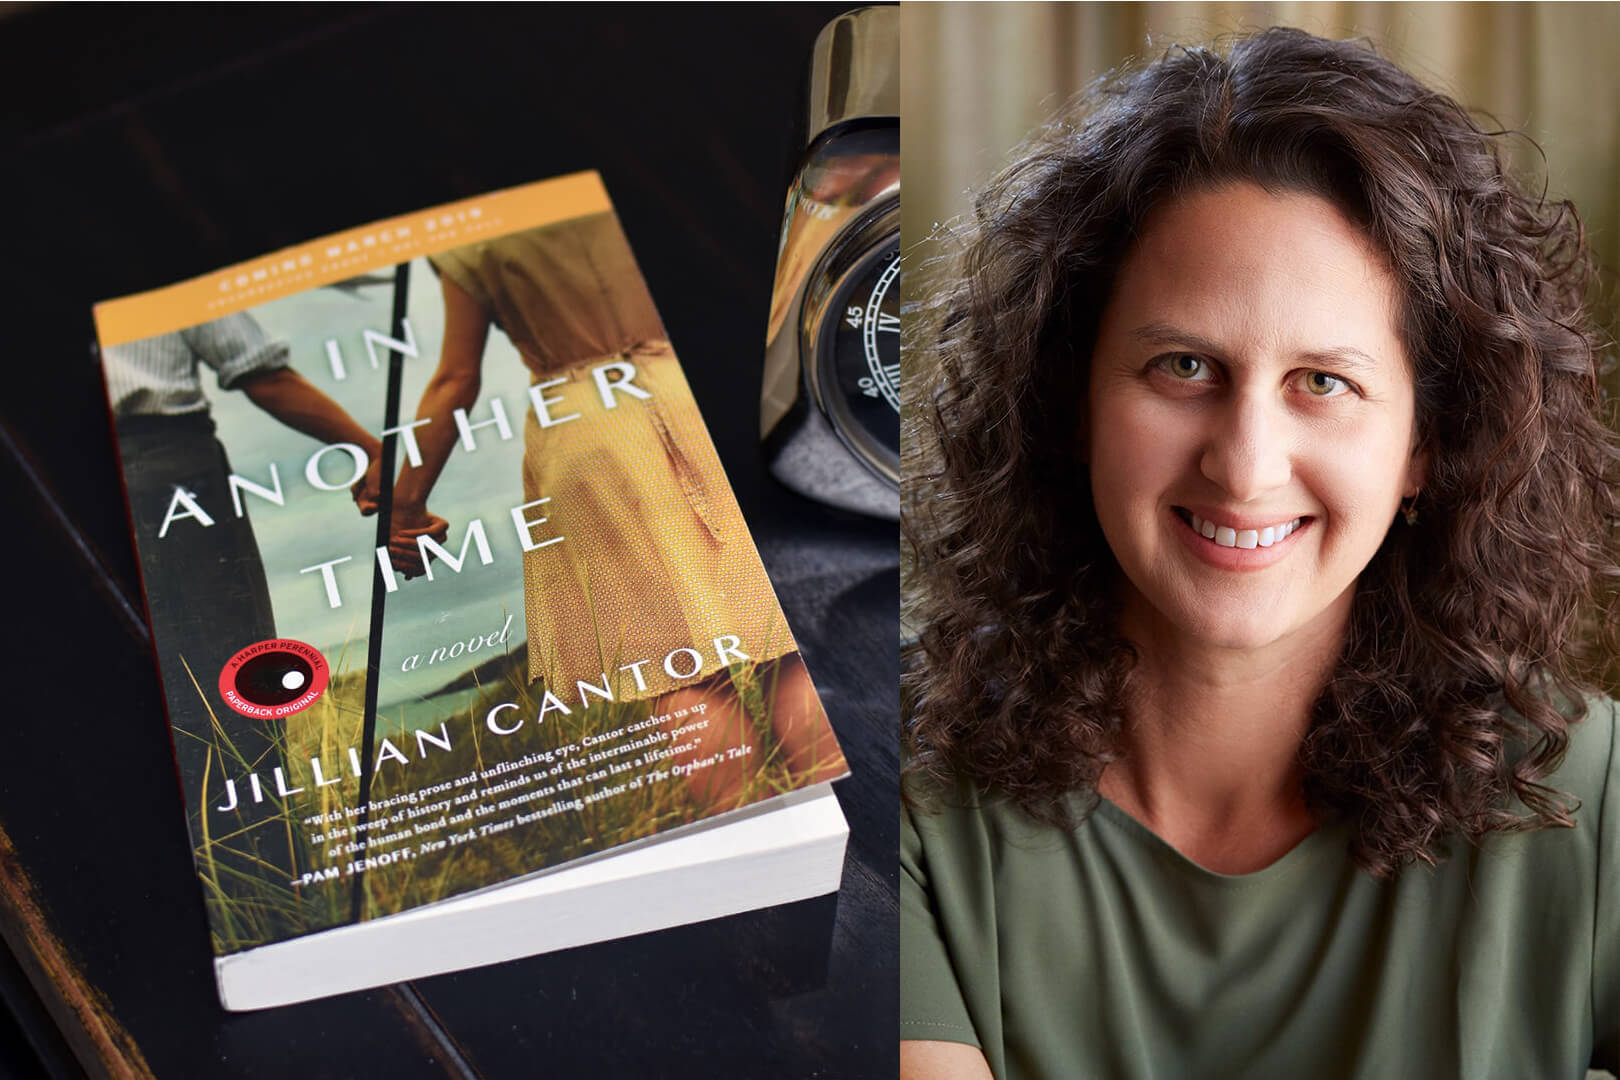 Q&A with Jillian Cantor, Author of In Another Time